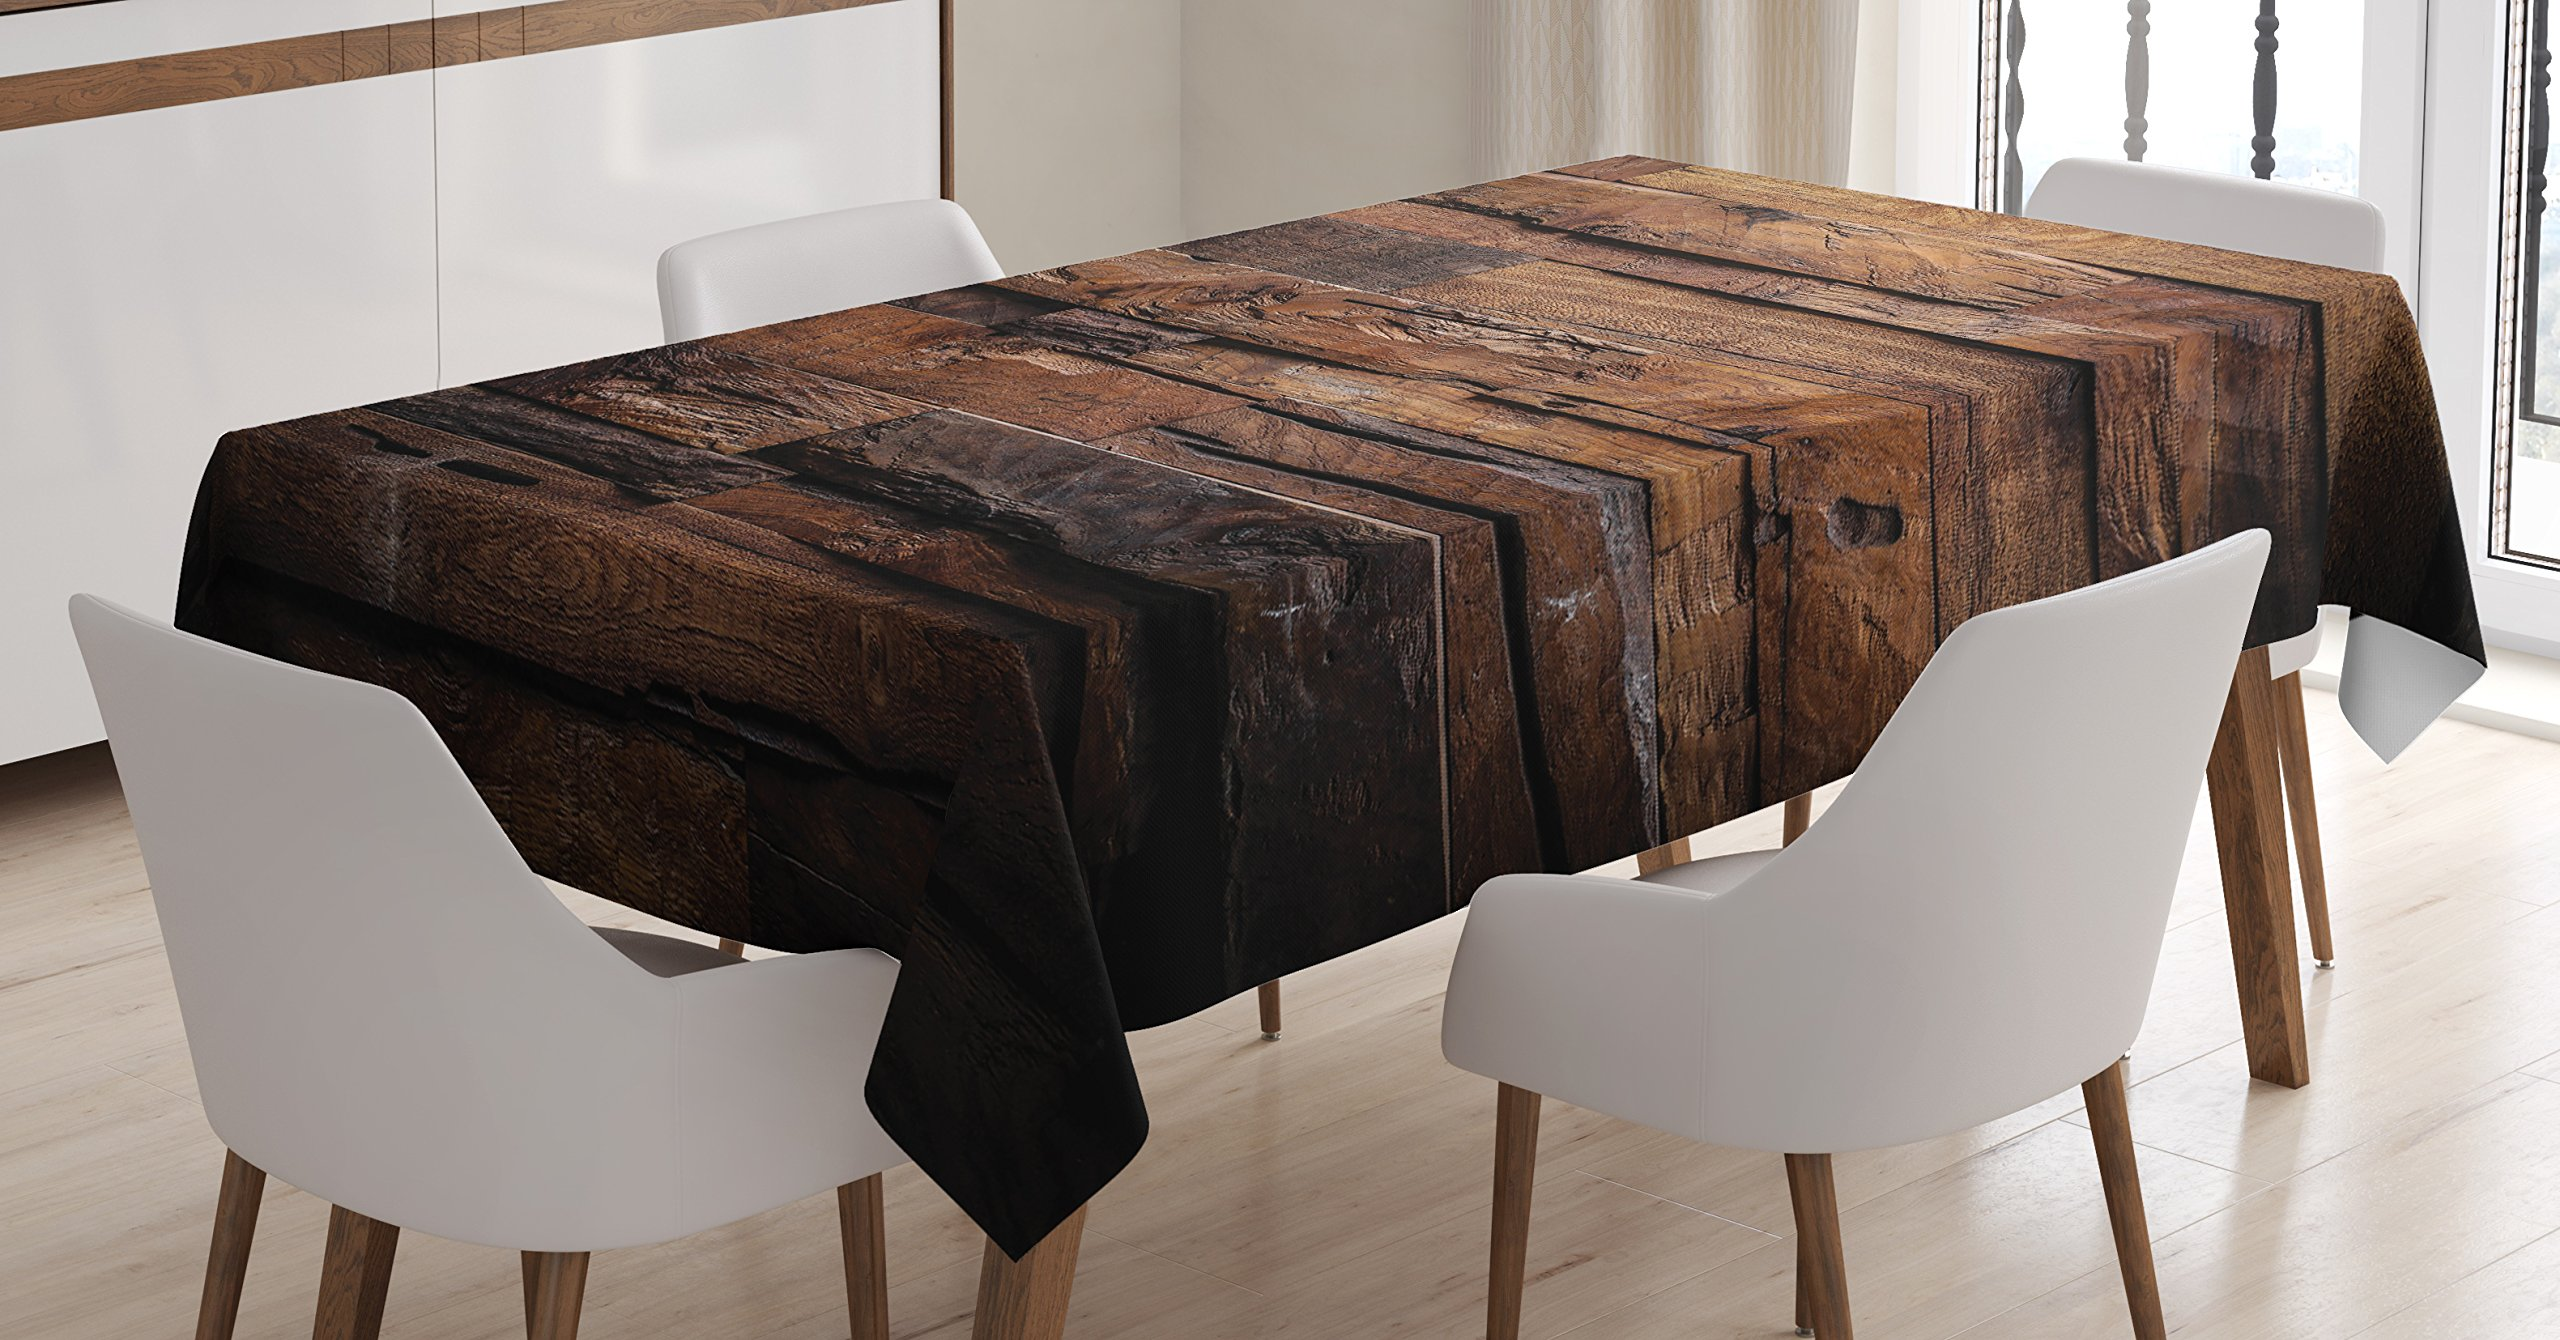 Ambesonne Chocolate Tablecloth, Rough Dark Timber Texture Image Rustic Country Theme Hardwood Carpentry, Dining Room Kitchen Rectangular Table Cover, 60 W X 84 L inches, Brown Dark Brown by Ambesonne (Image #1)